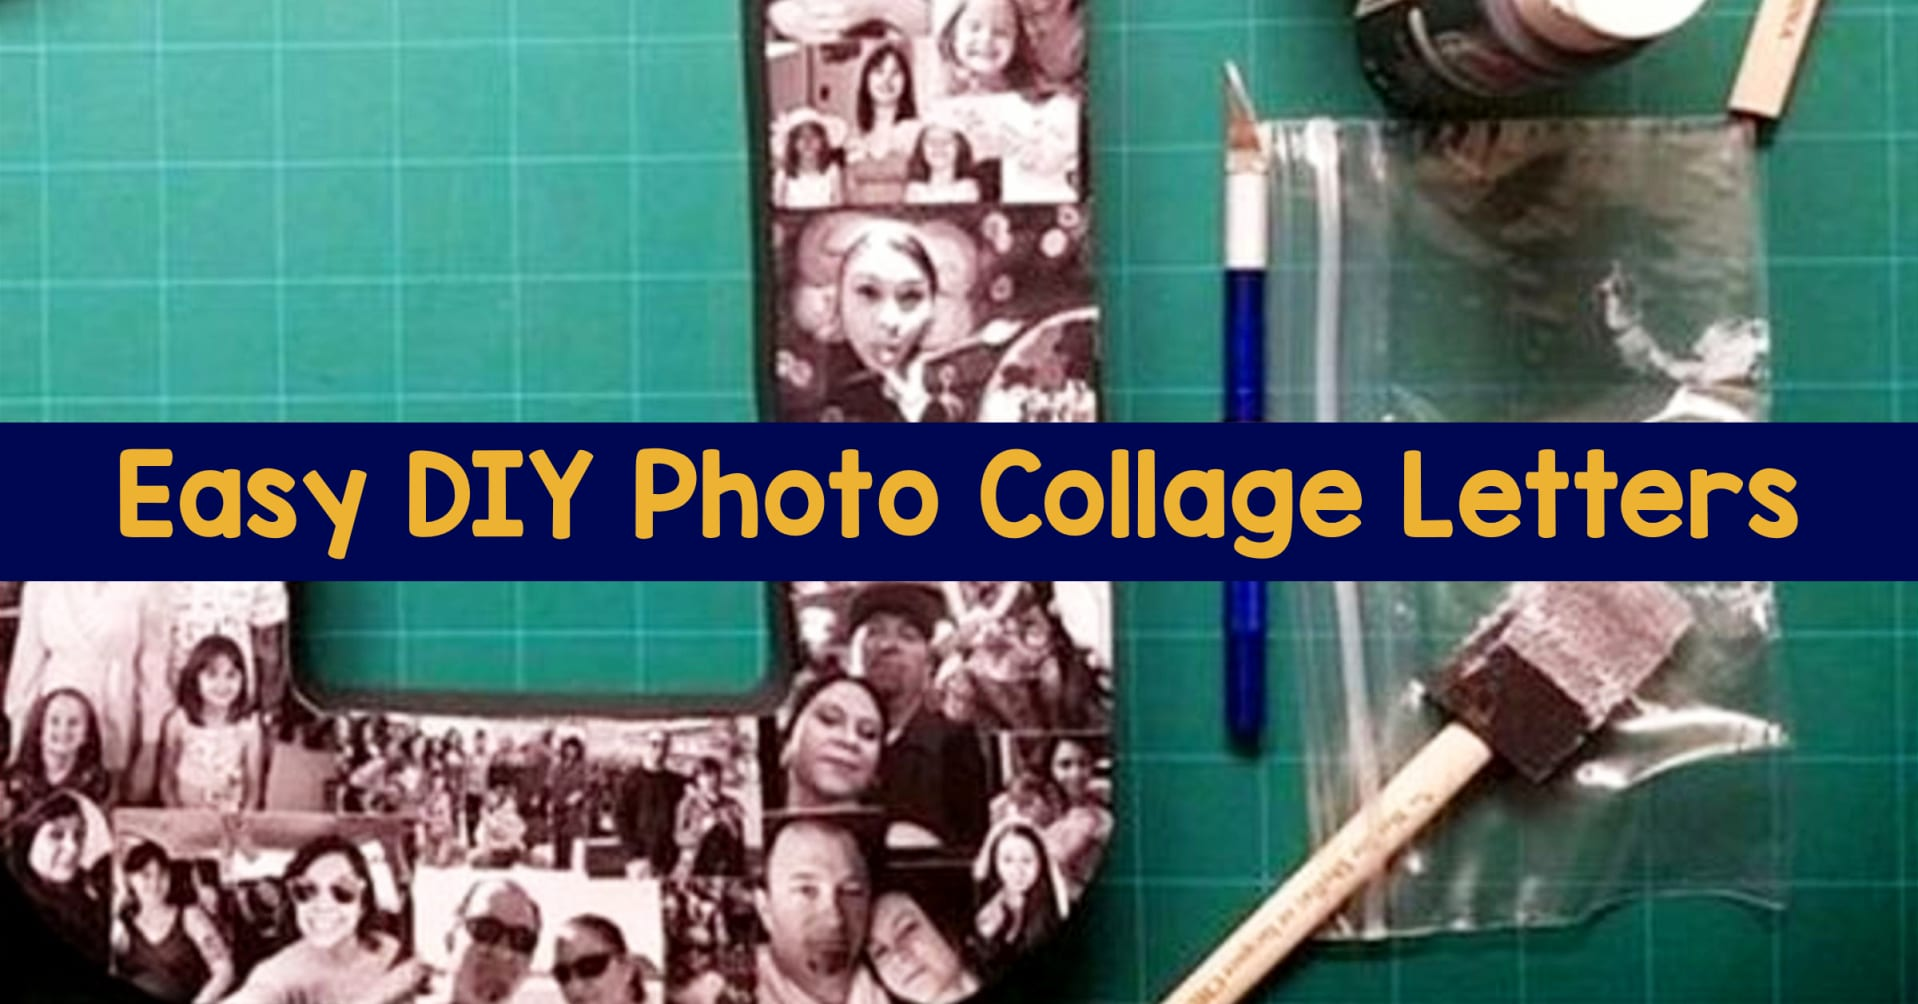 Easy DIY photo collage letters